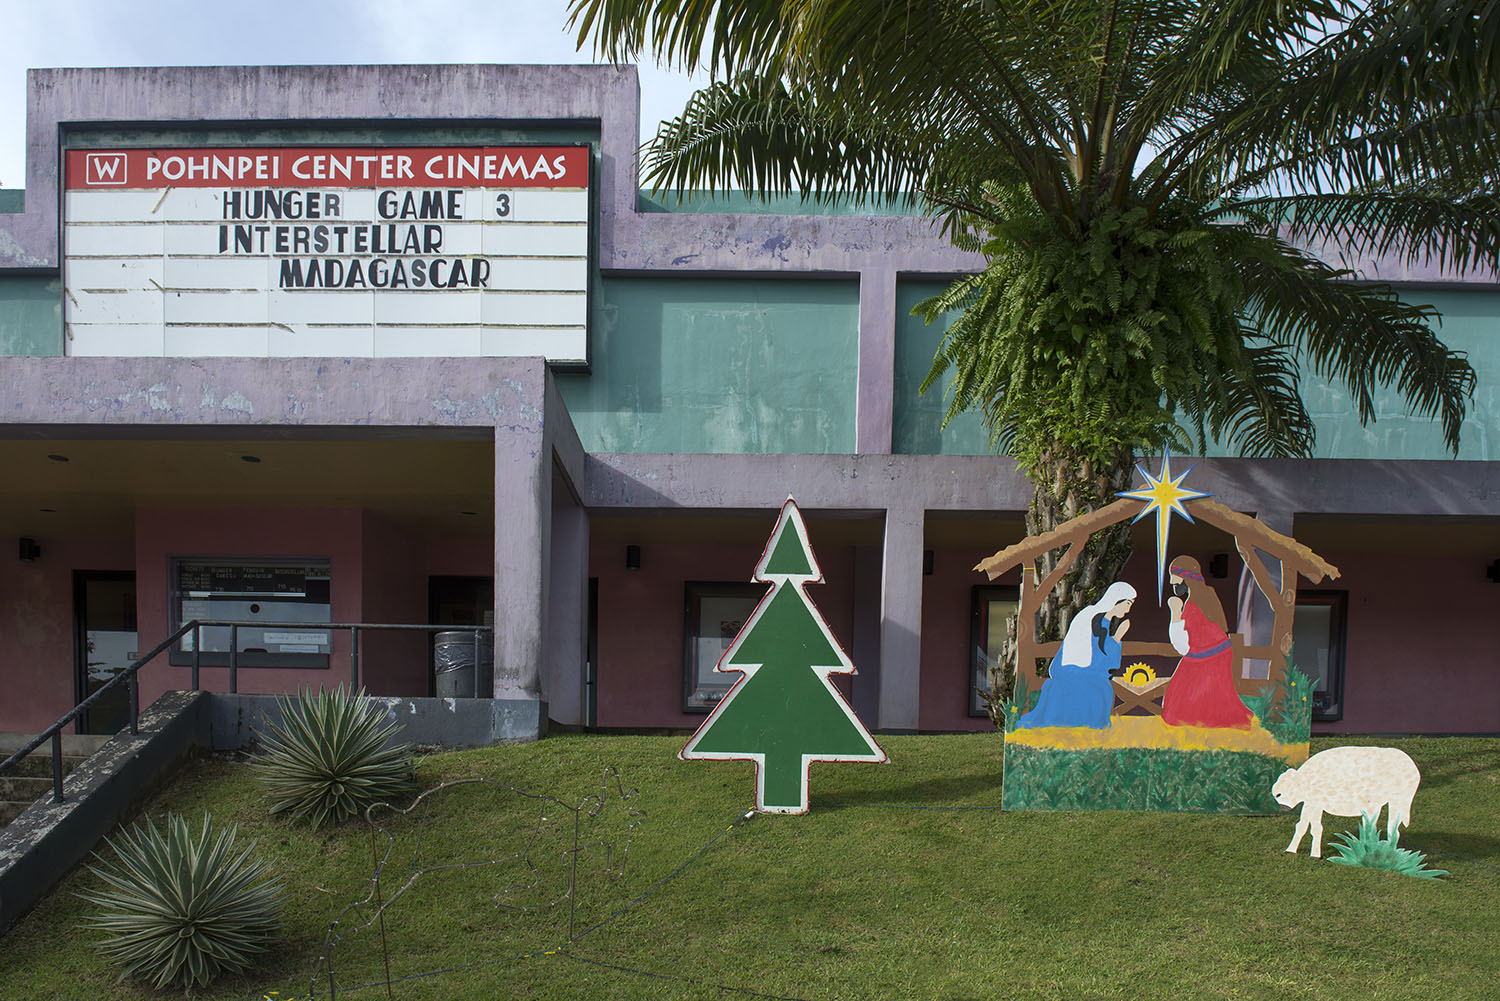 <p>A movie theater in Kolonia, Pohnpei. In December, Western influence is evident in more ways than one.</p>